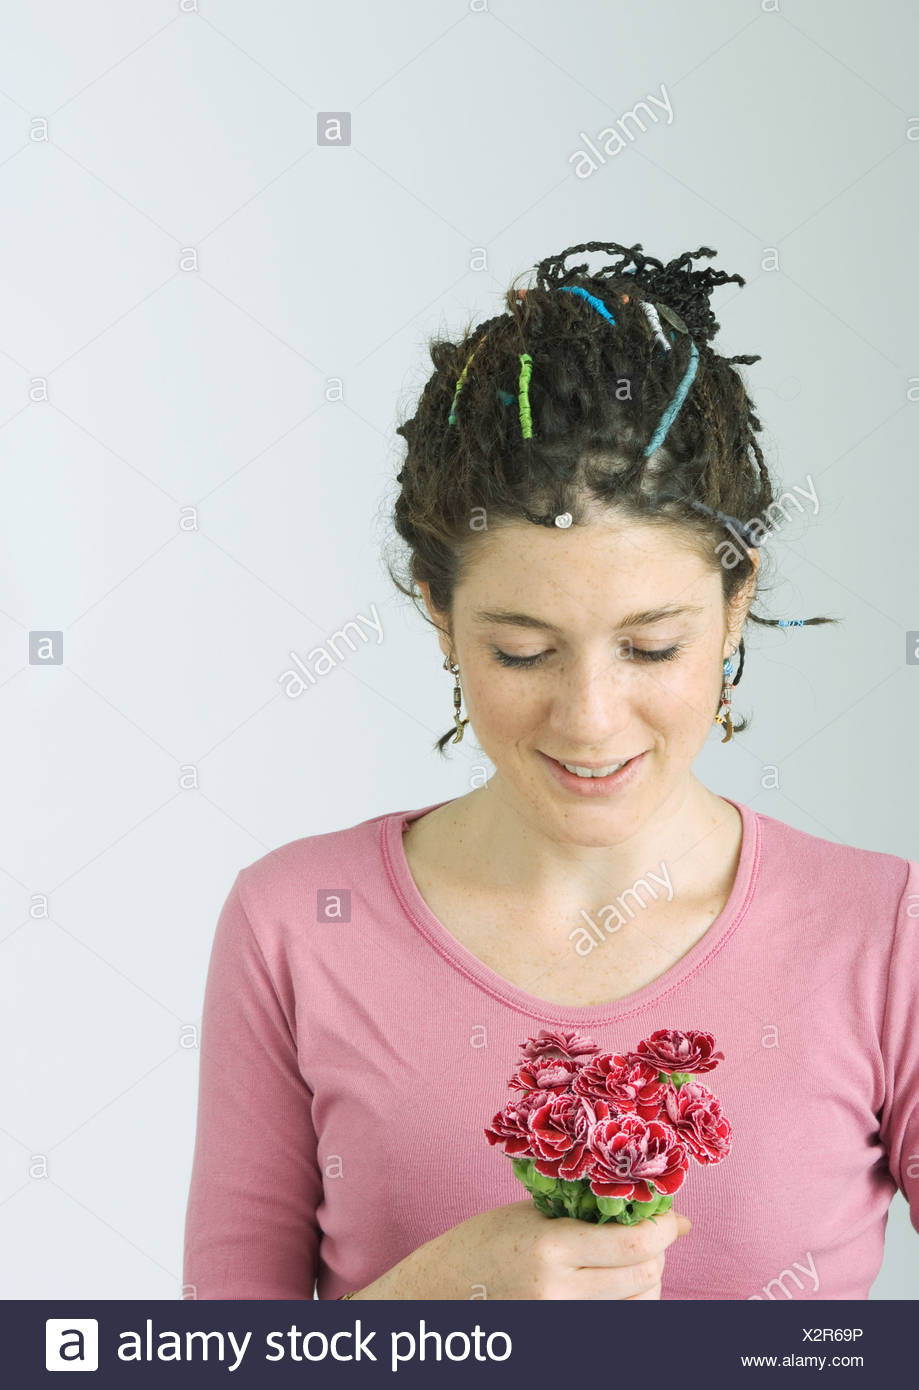 Young woman holding small bouquet of flowers - Stock Image